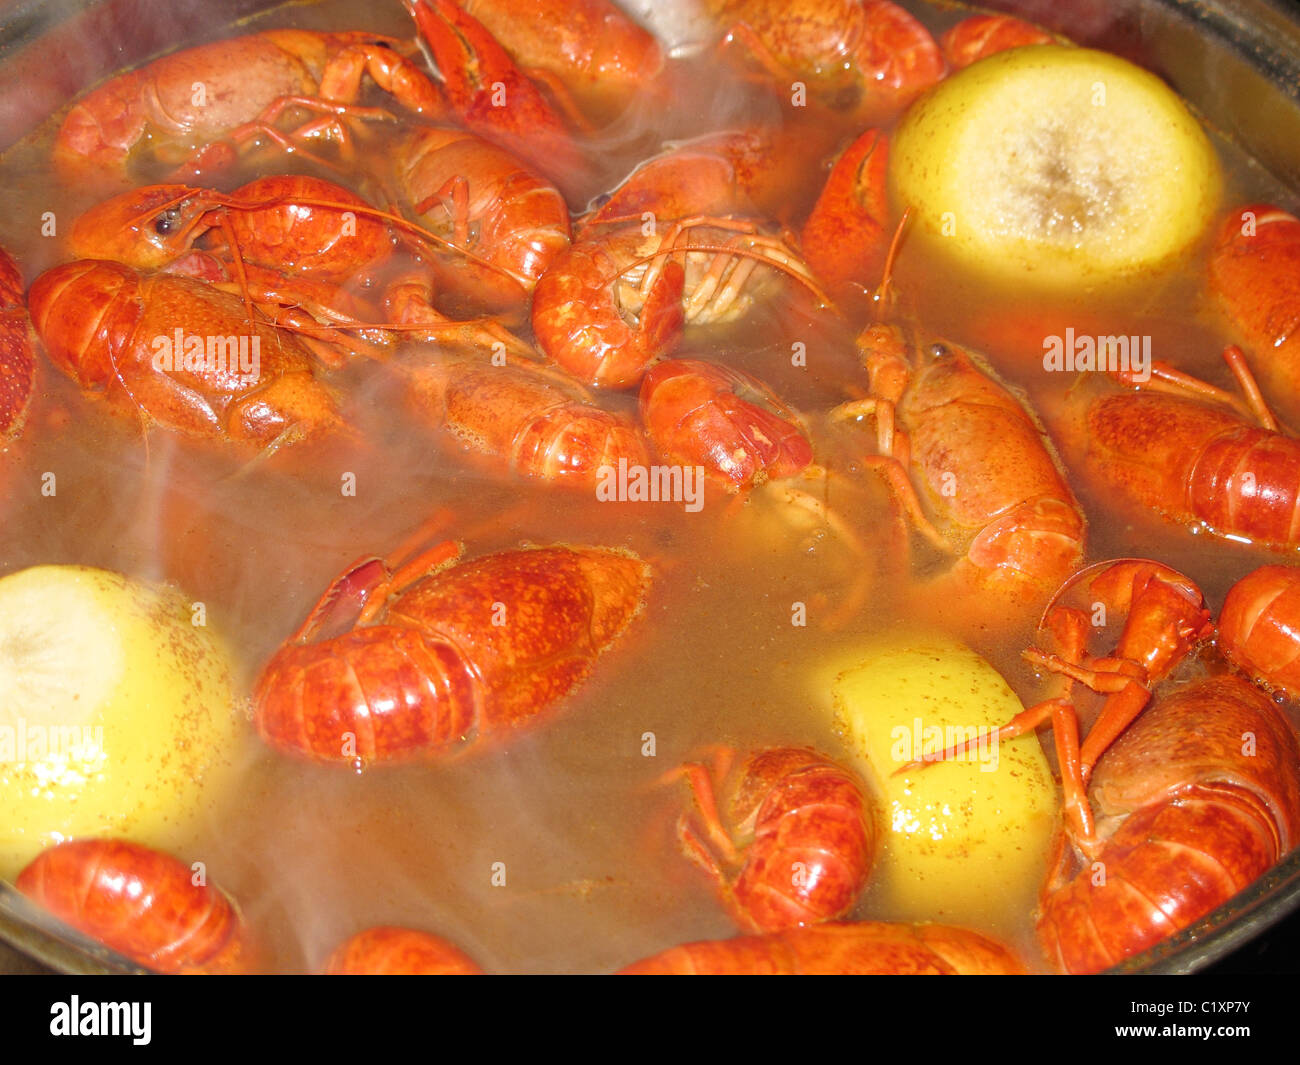 Crawfish boil, crawfish cooking and steaming in a pot with lemon - Stock Image